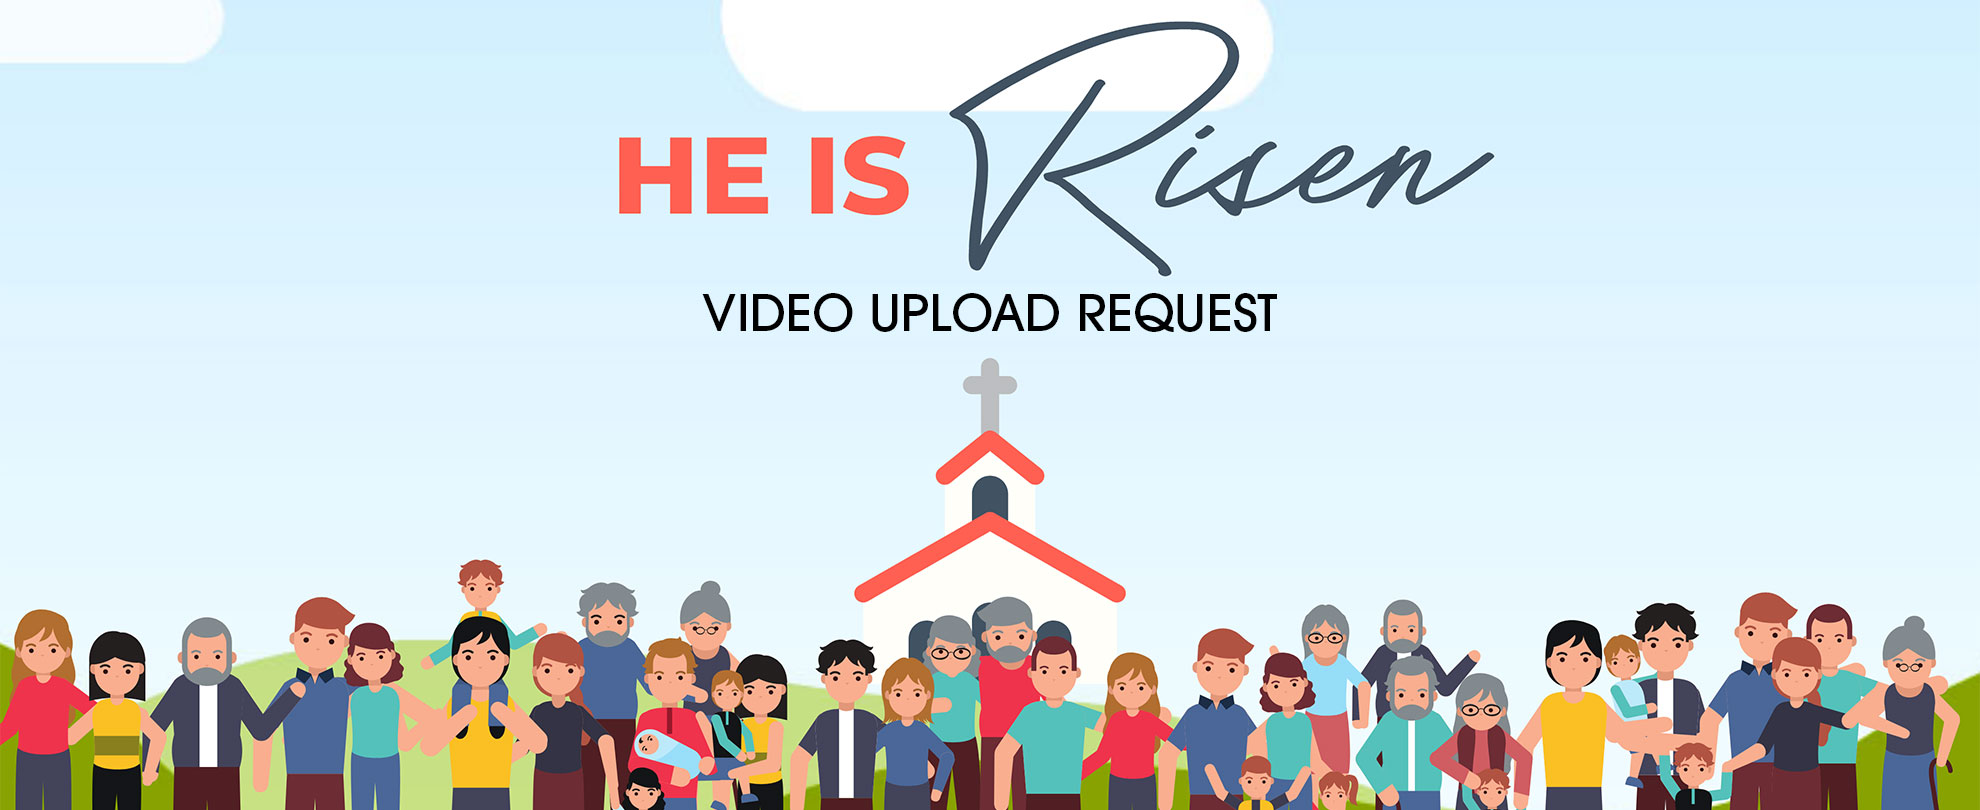 He is Risen!